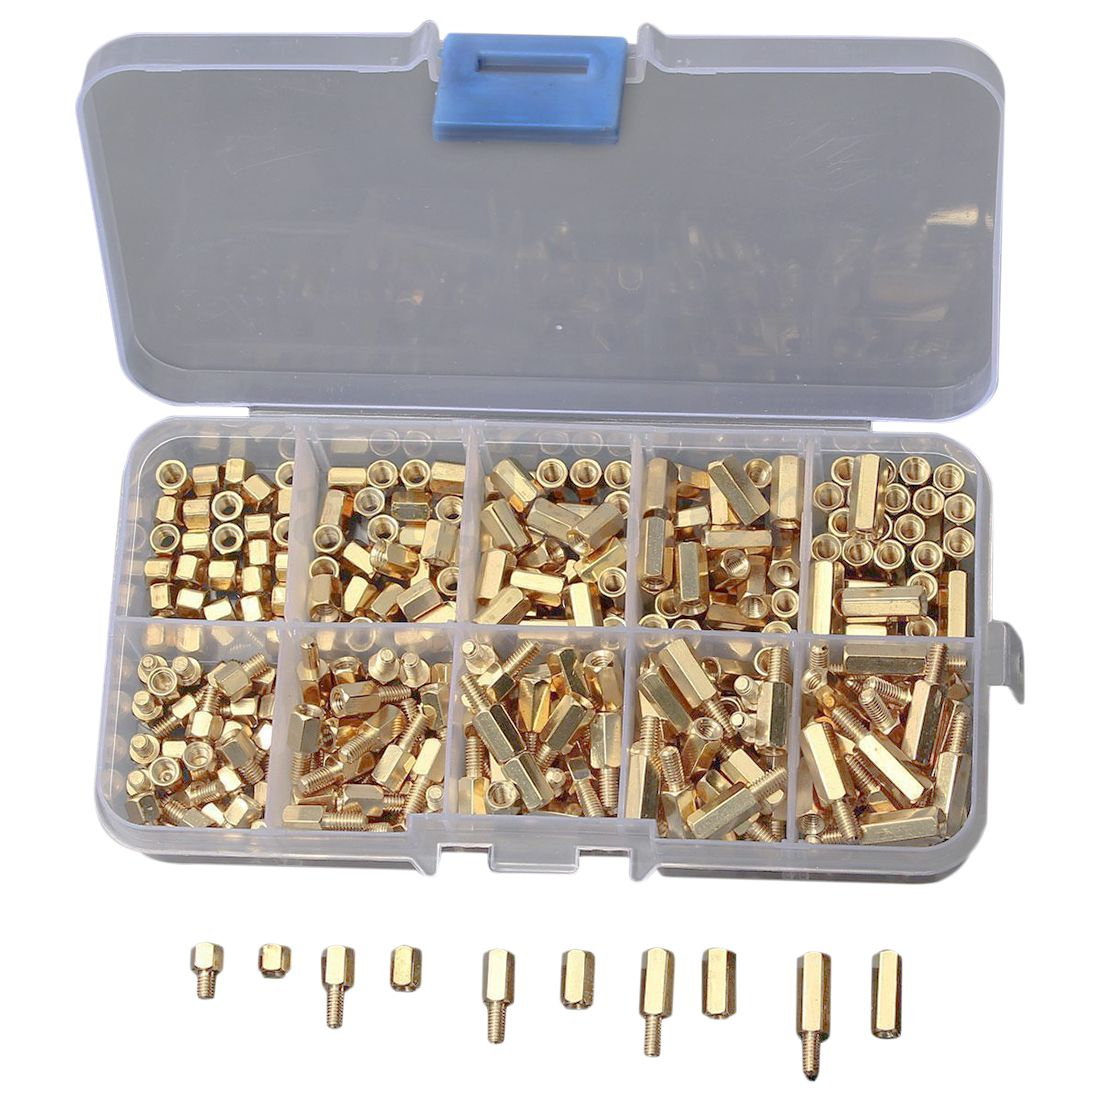 300 Pcs/Kit M3 Vis Écrou 4-12mm Spacer Hexagonale En Laiton Isolement Colonne Filetée Carte Mère Entretoises Jaune